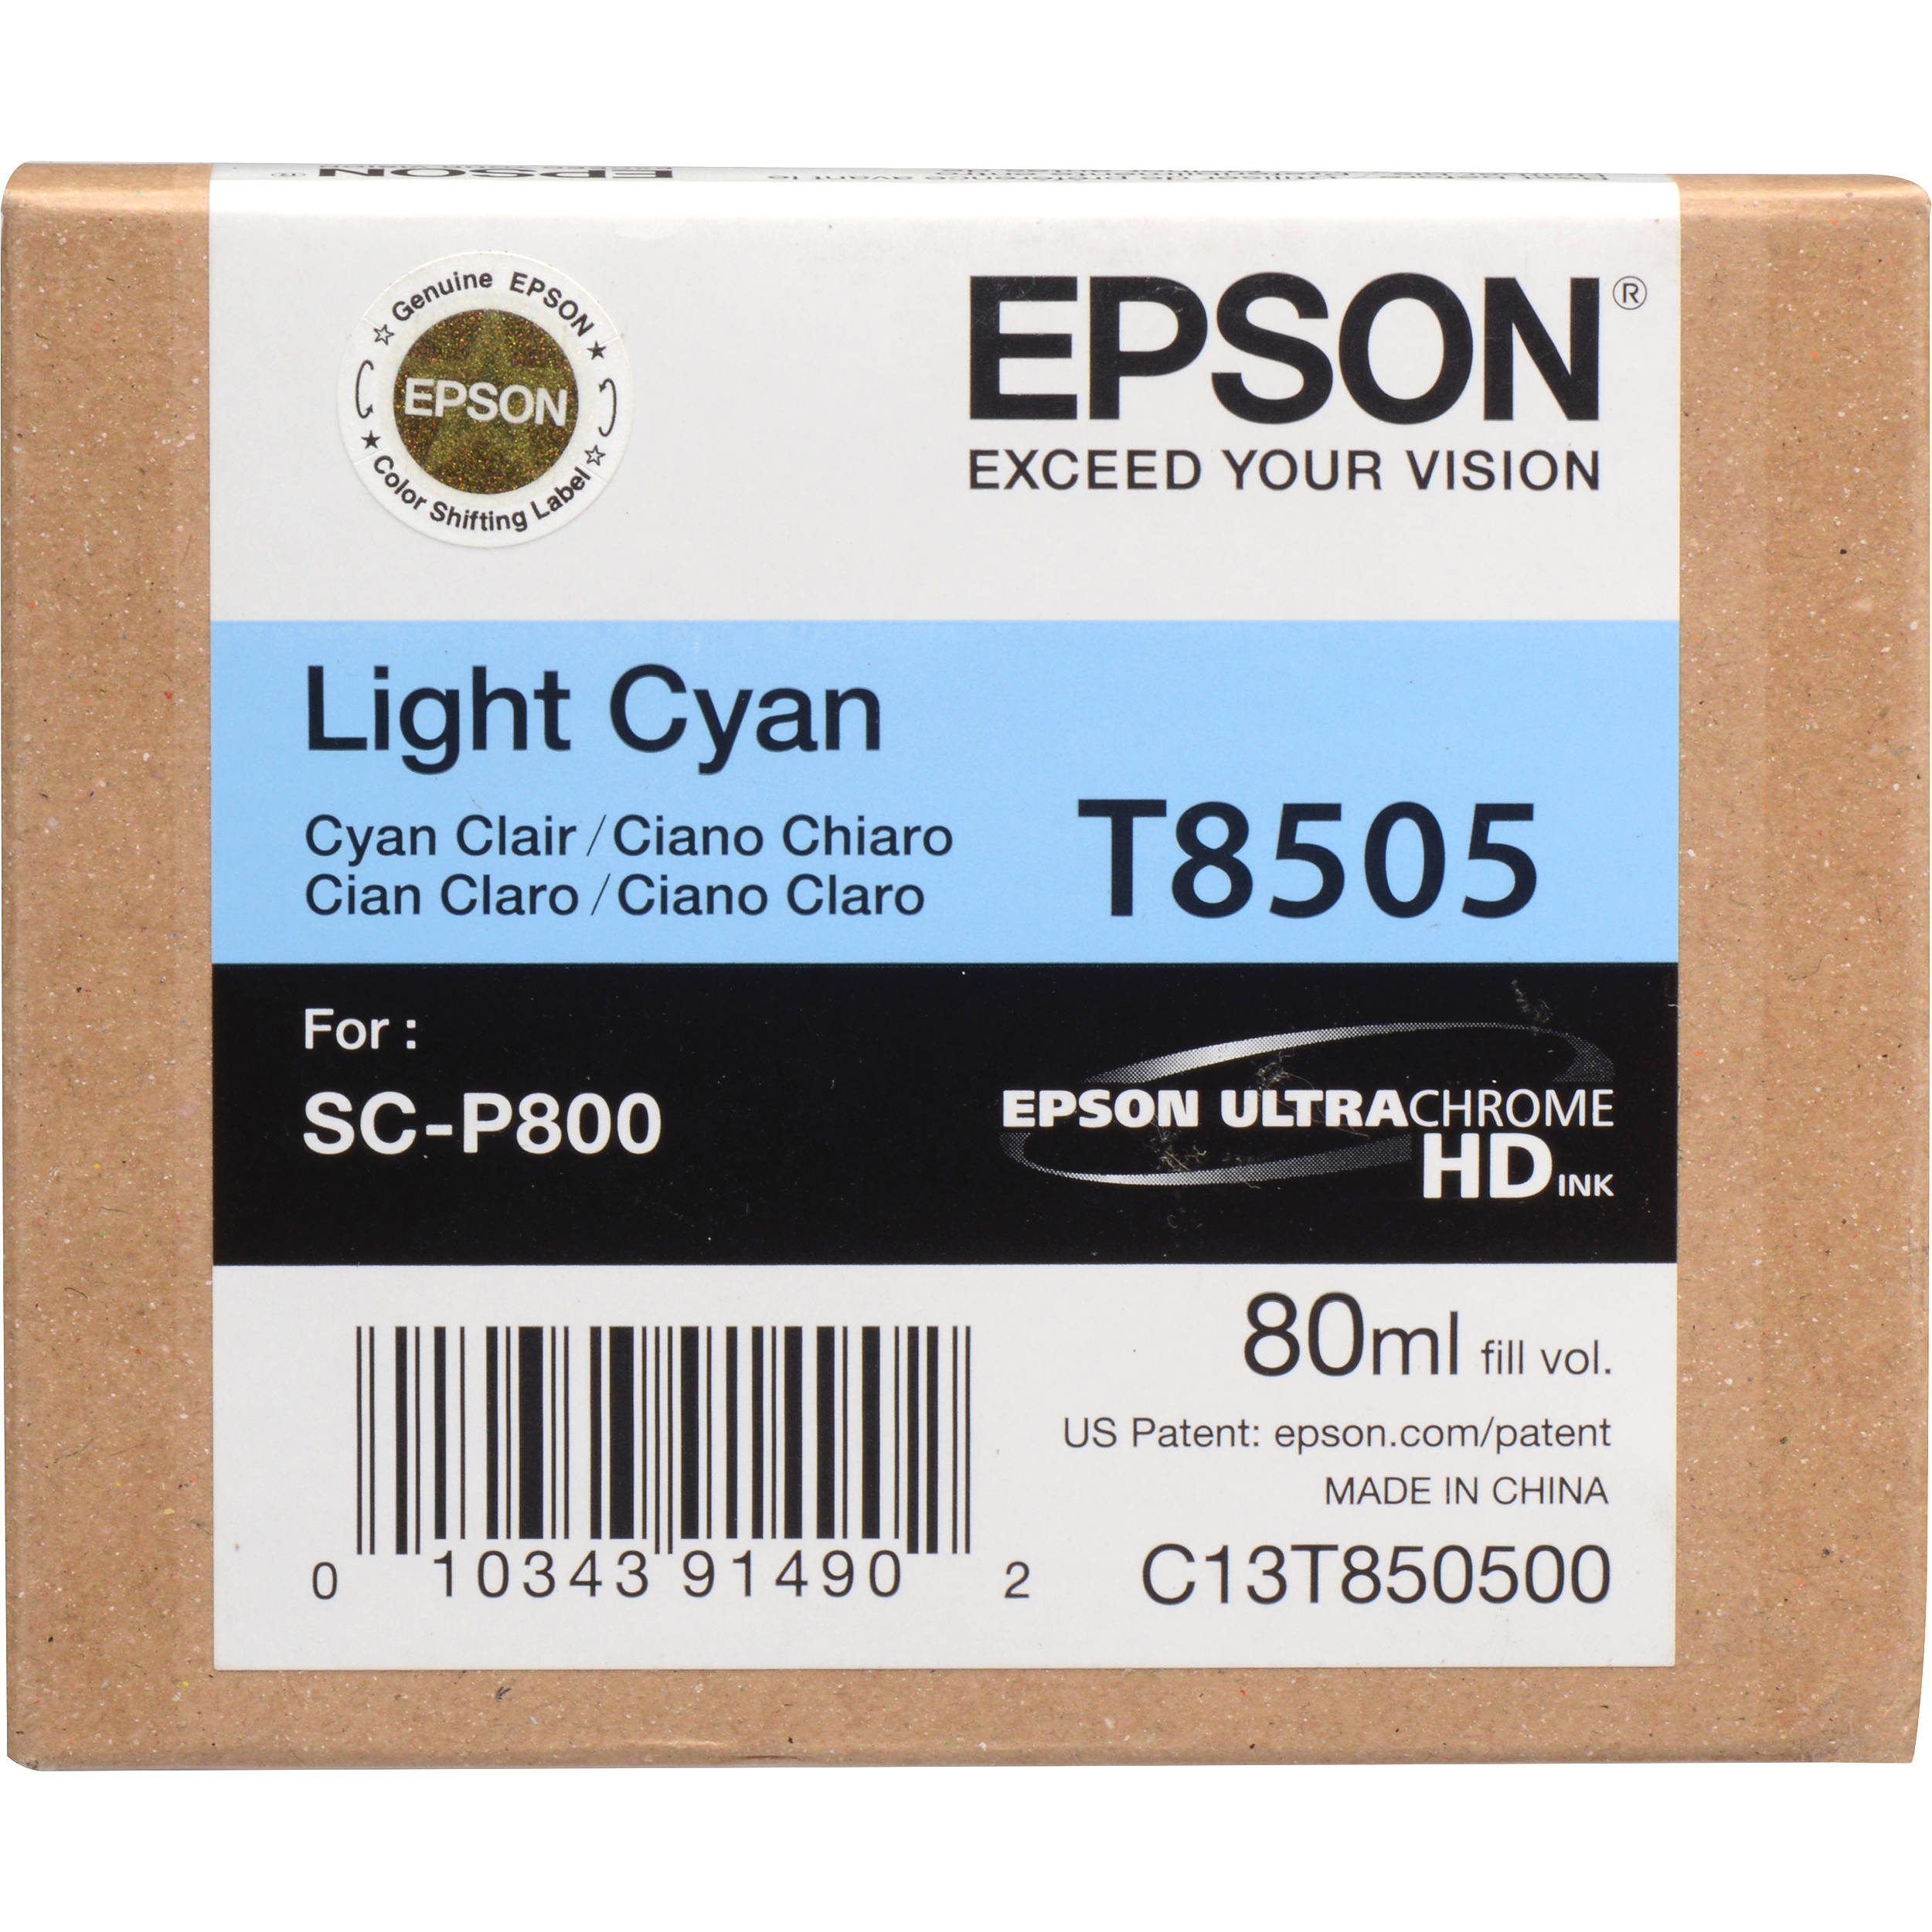 Epson T850500 Ink Cartridge - Light Cyan